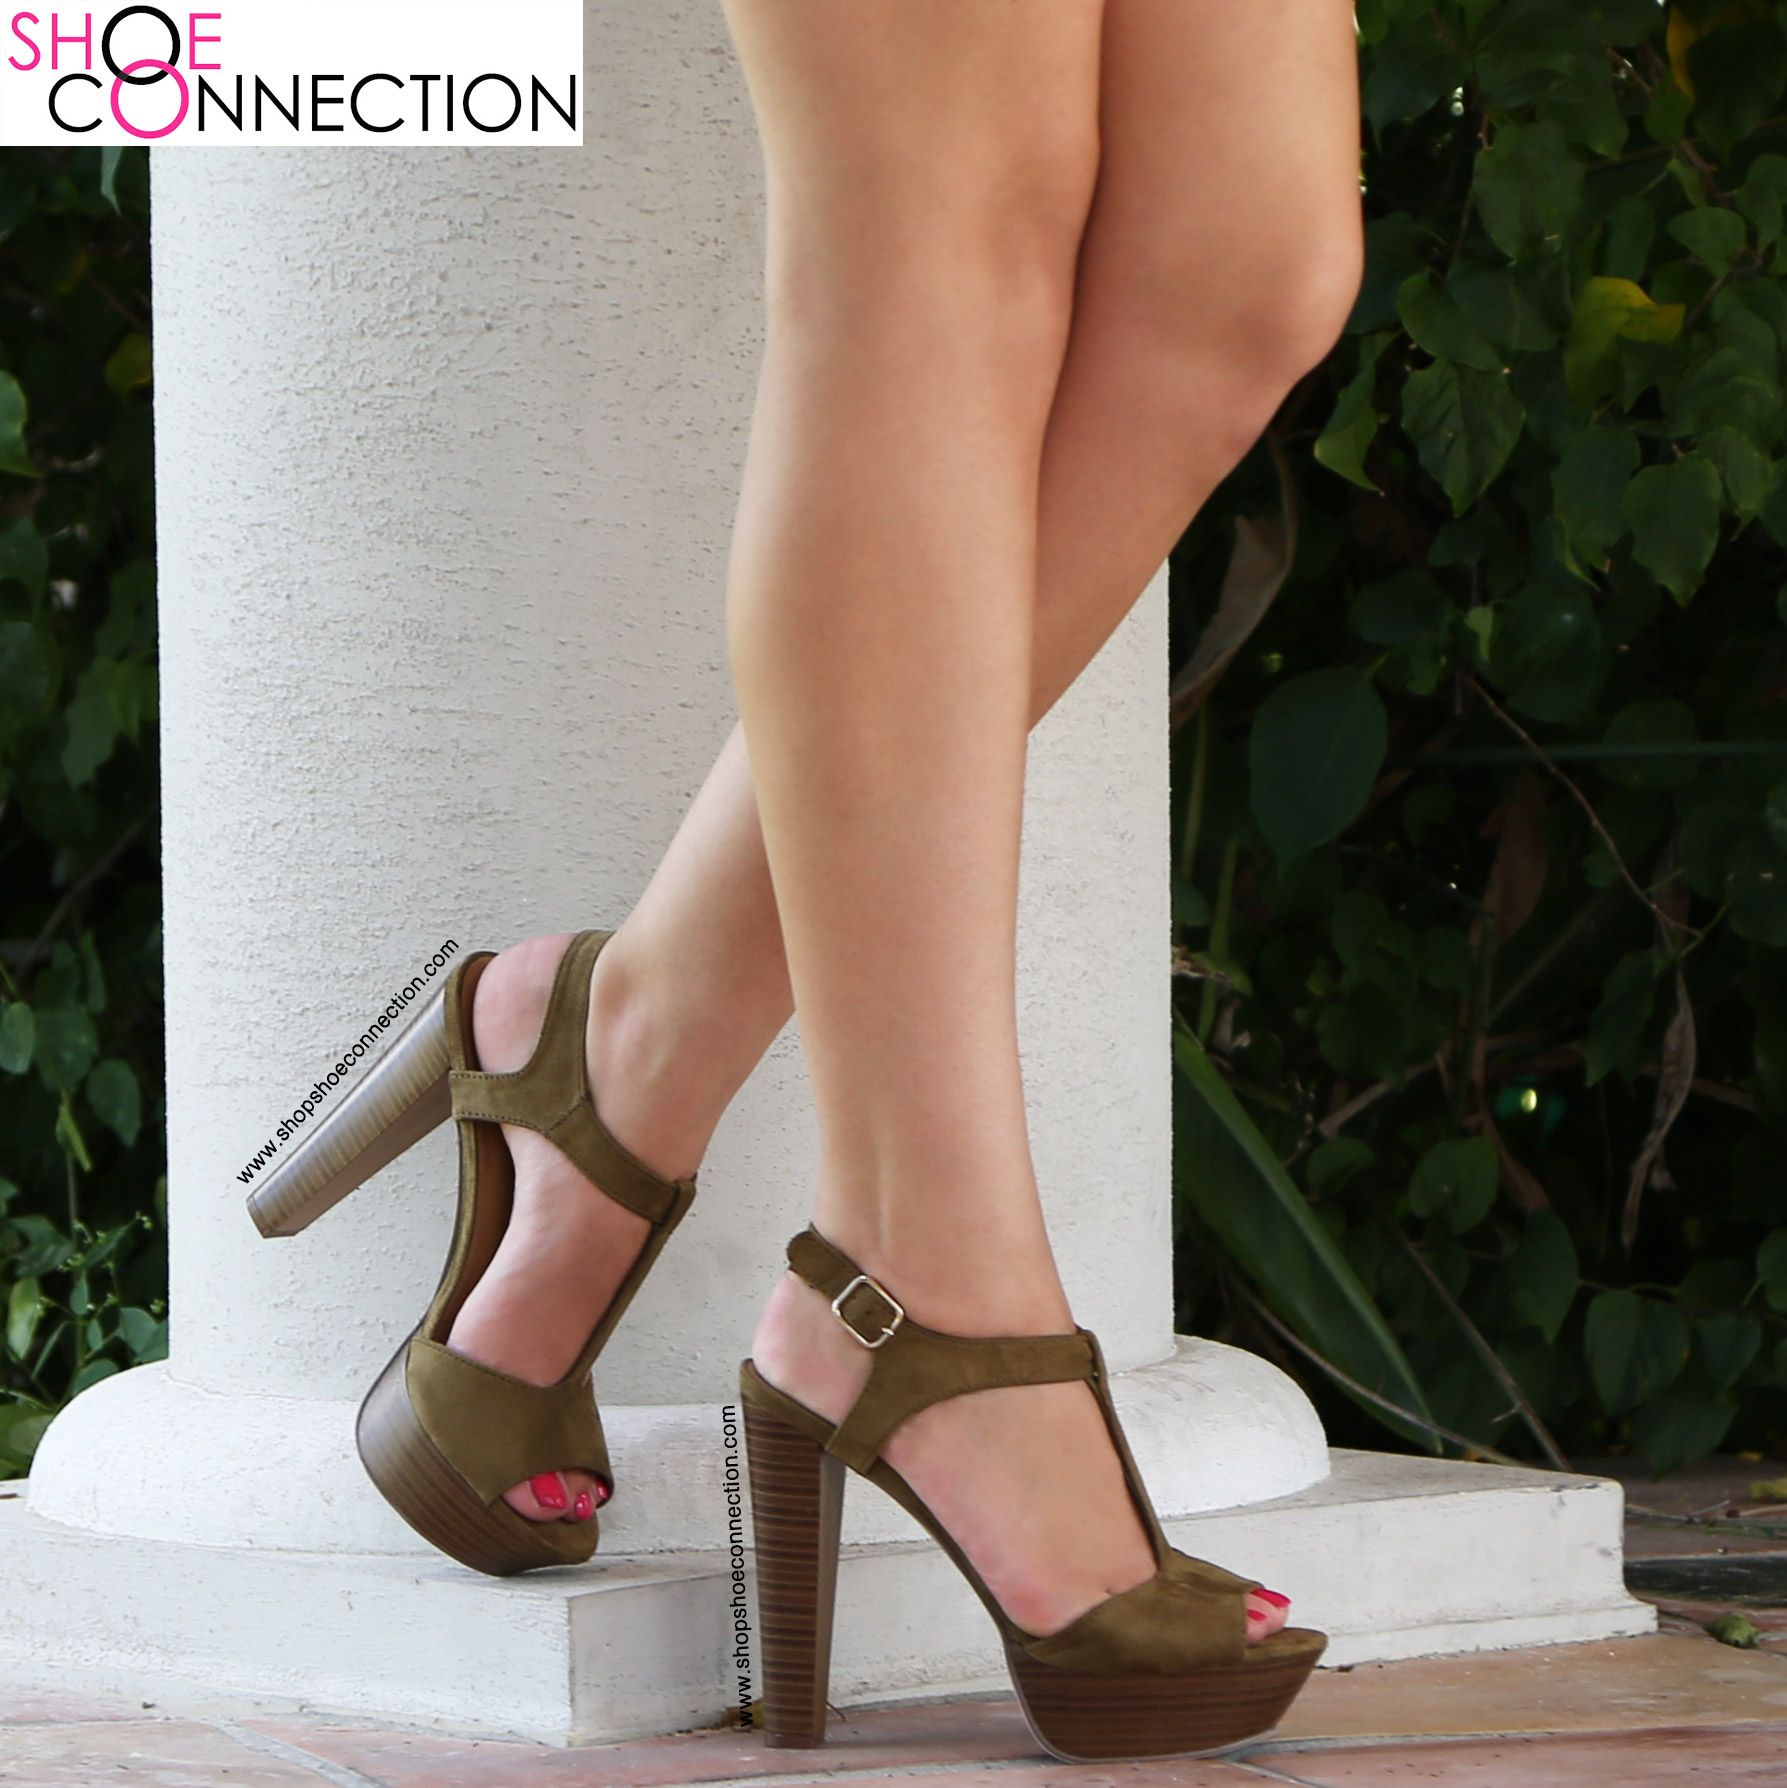 Dress to impress yourself with IMPRESS ME 😜💁🏻🤗   🌟25% off the ENTIRE WEBSITE! No code needed. Price are as shown on the website. 🤗 www.shopshoeconnection.com ✔️ #shopshoeconnection #shoeconnection #impressme #olive #chunkyheels #thickheels #platforms #simple #sexy #comfy  #shopnow #heelsaddict #dresstoimpress